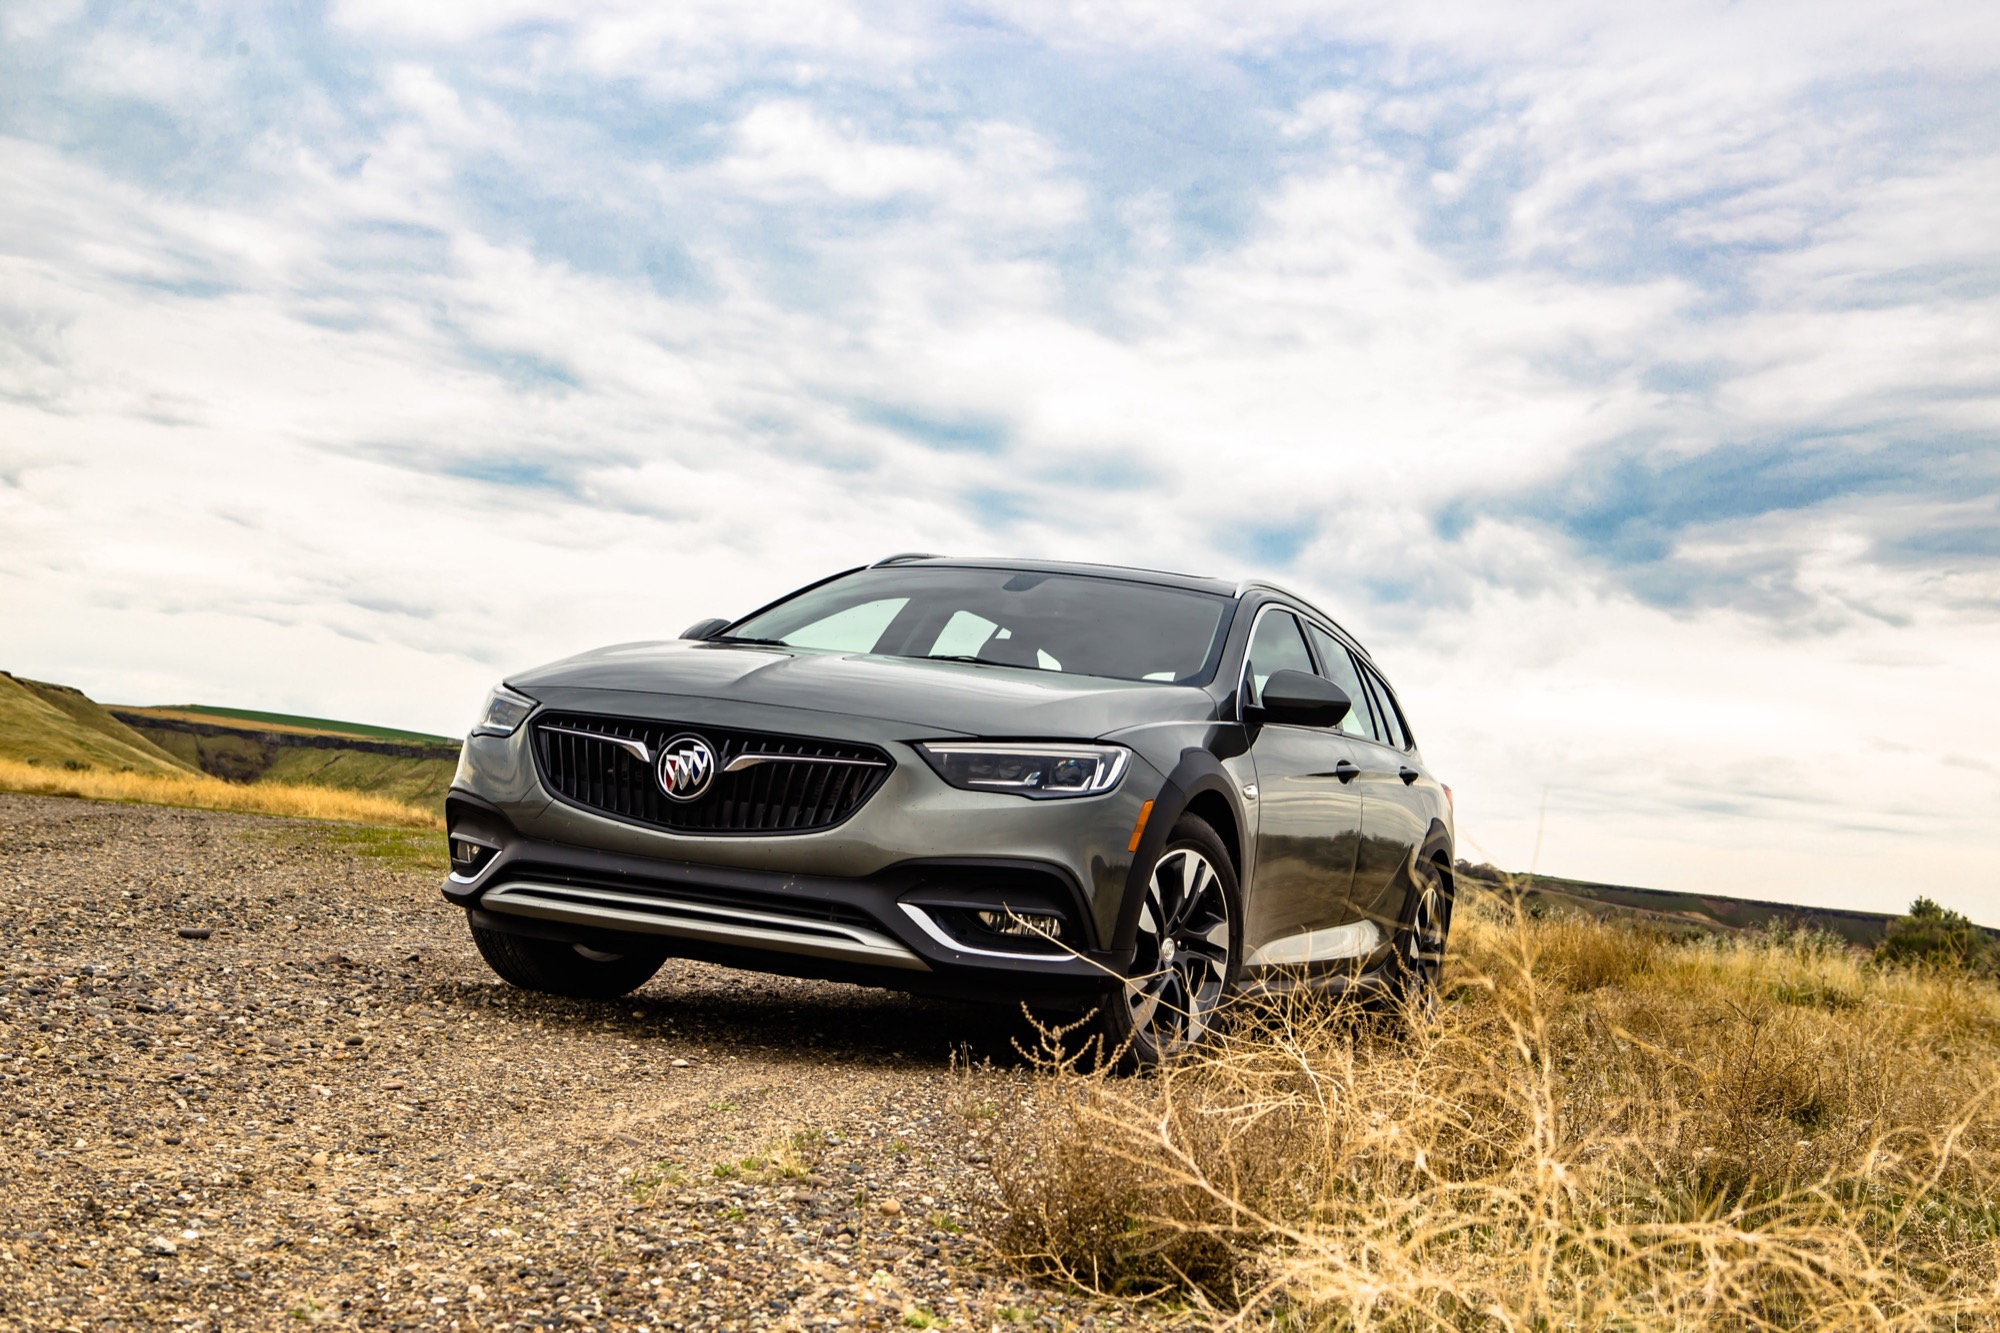 Does Buick Even Want To Sell The Regal Tourx? | Gm Authority 2022 Buick Regal Tourx Accessories, Changes, Release Date